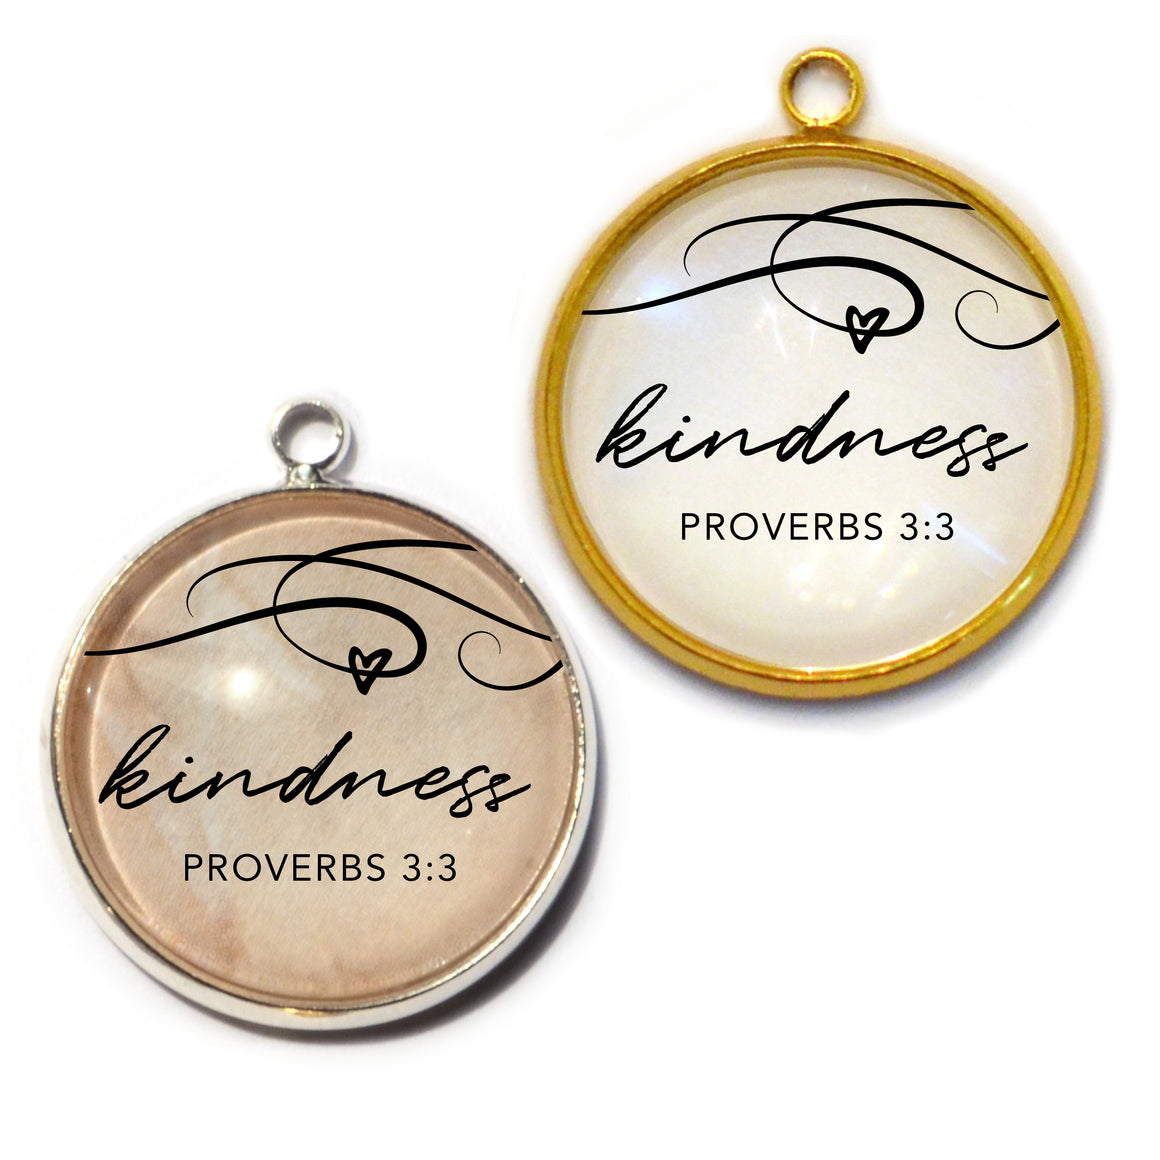 """Kindness"" Proverbs 3:3 Charm for Jewelry Making, 20mm, Silver, Gold"